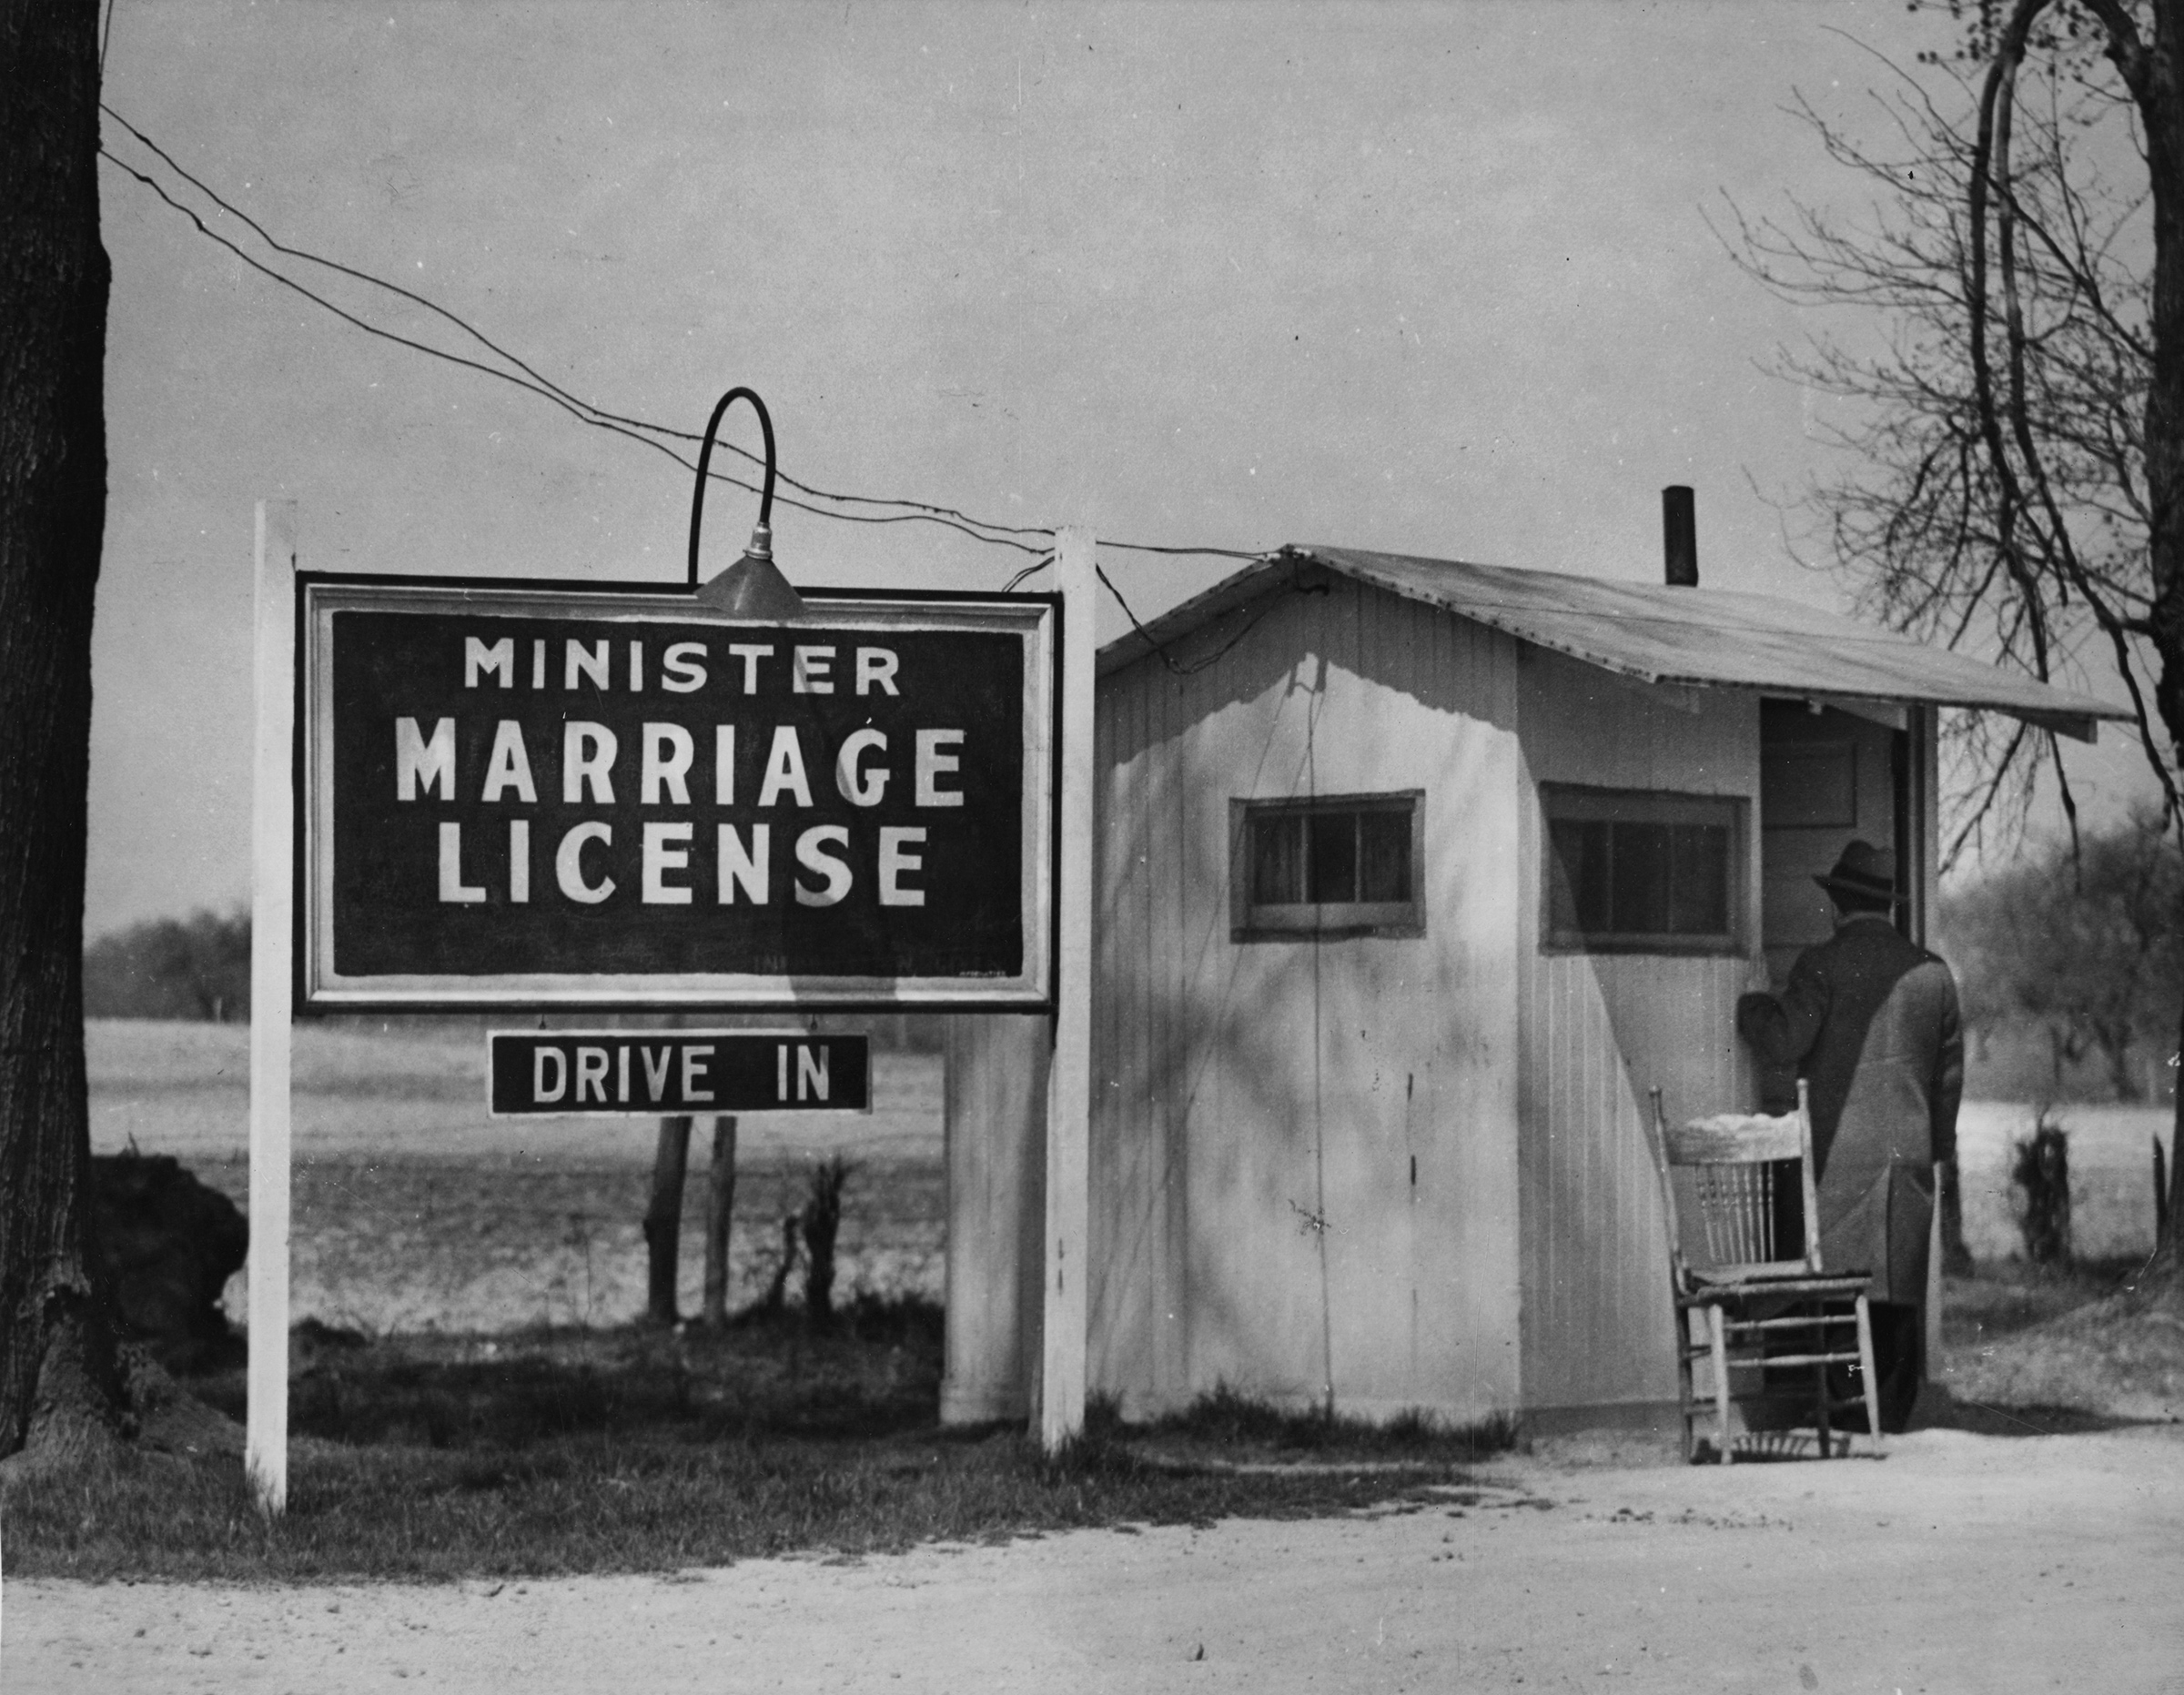 A walk-up customer at the door of a minister's marriage license booth in Elkton, Md. during the 1920-30s